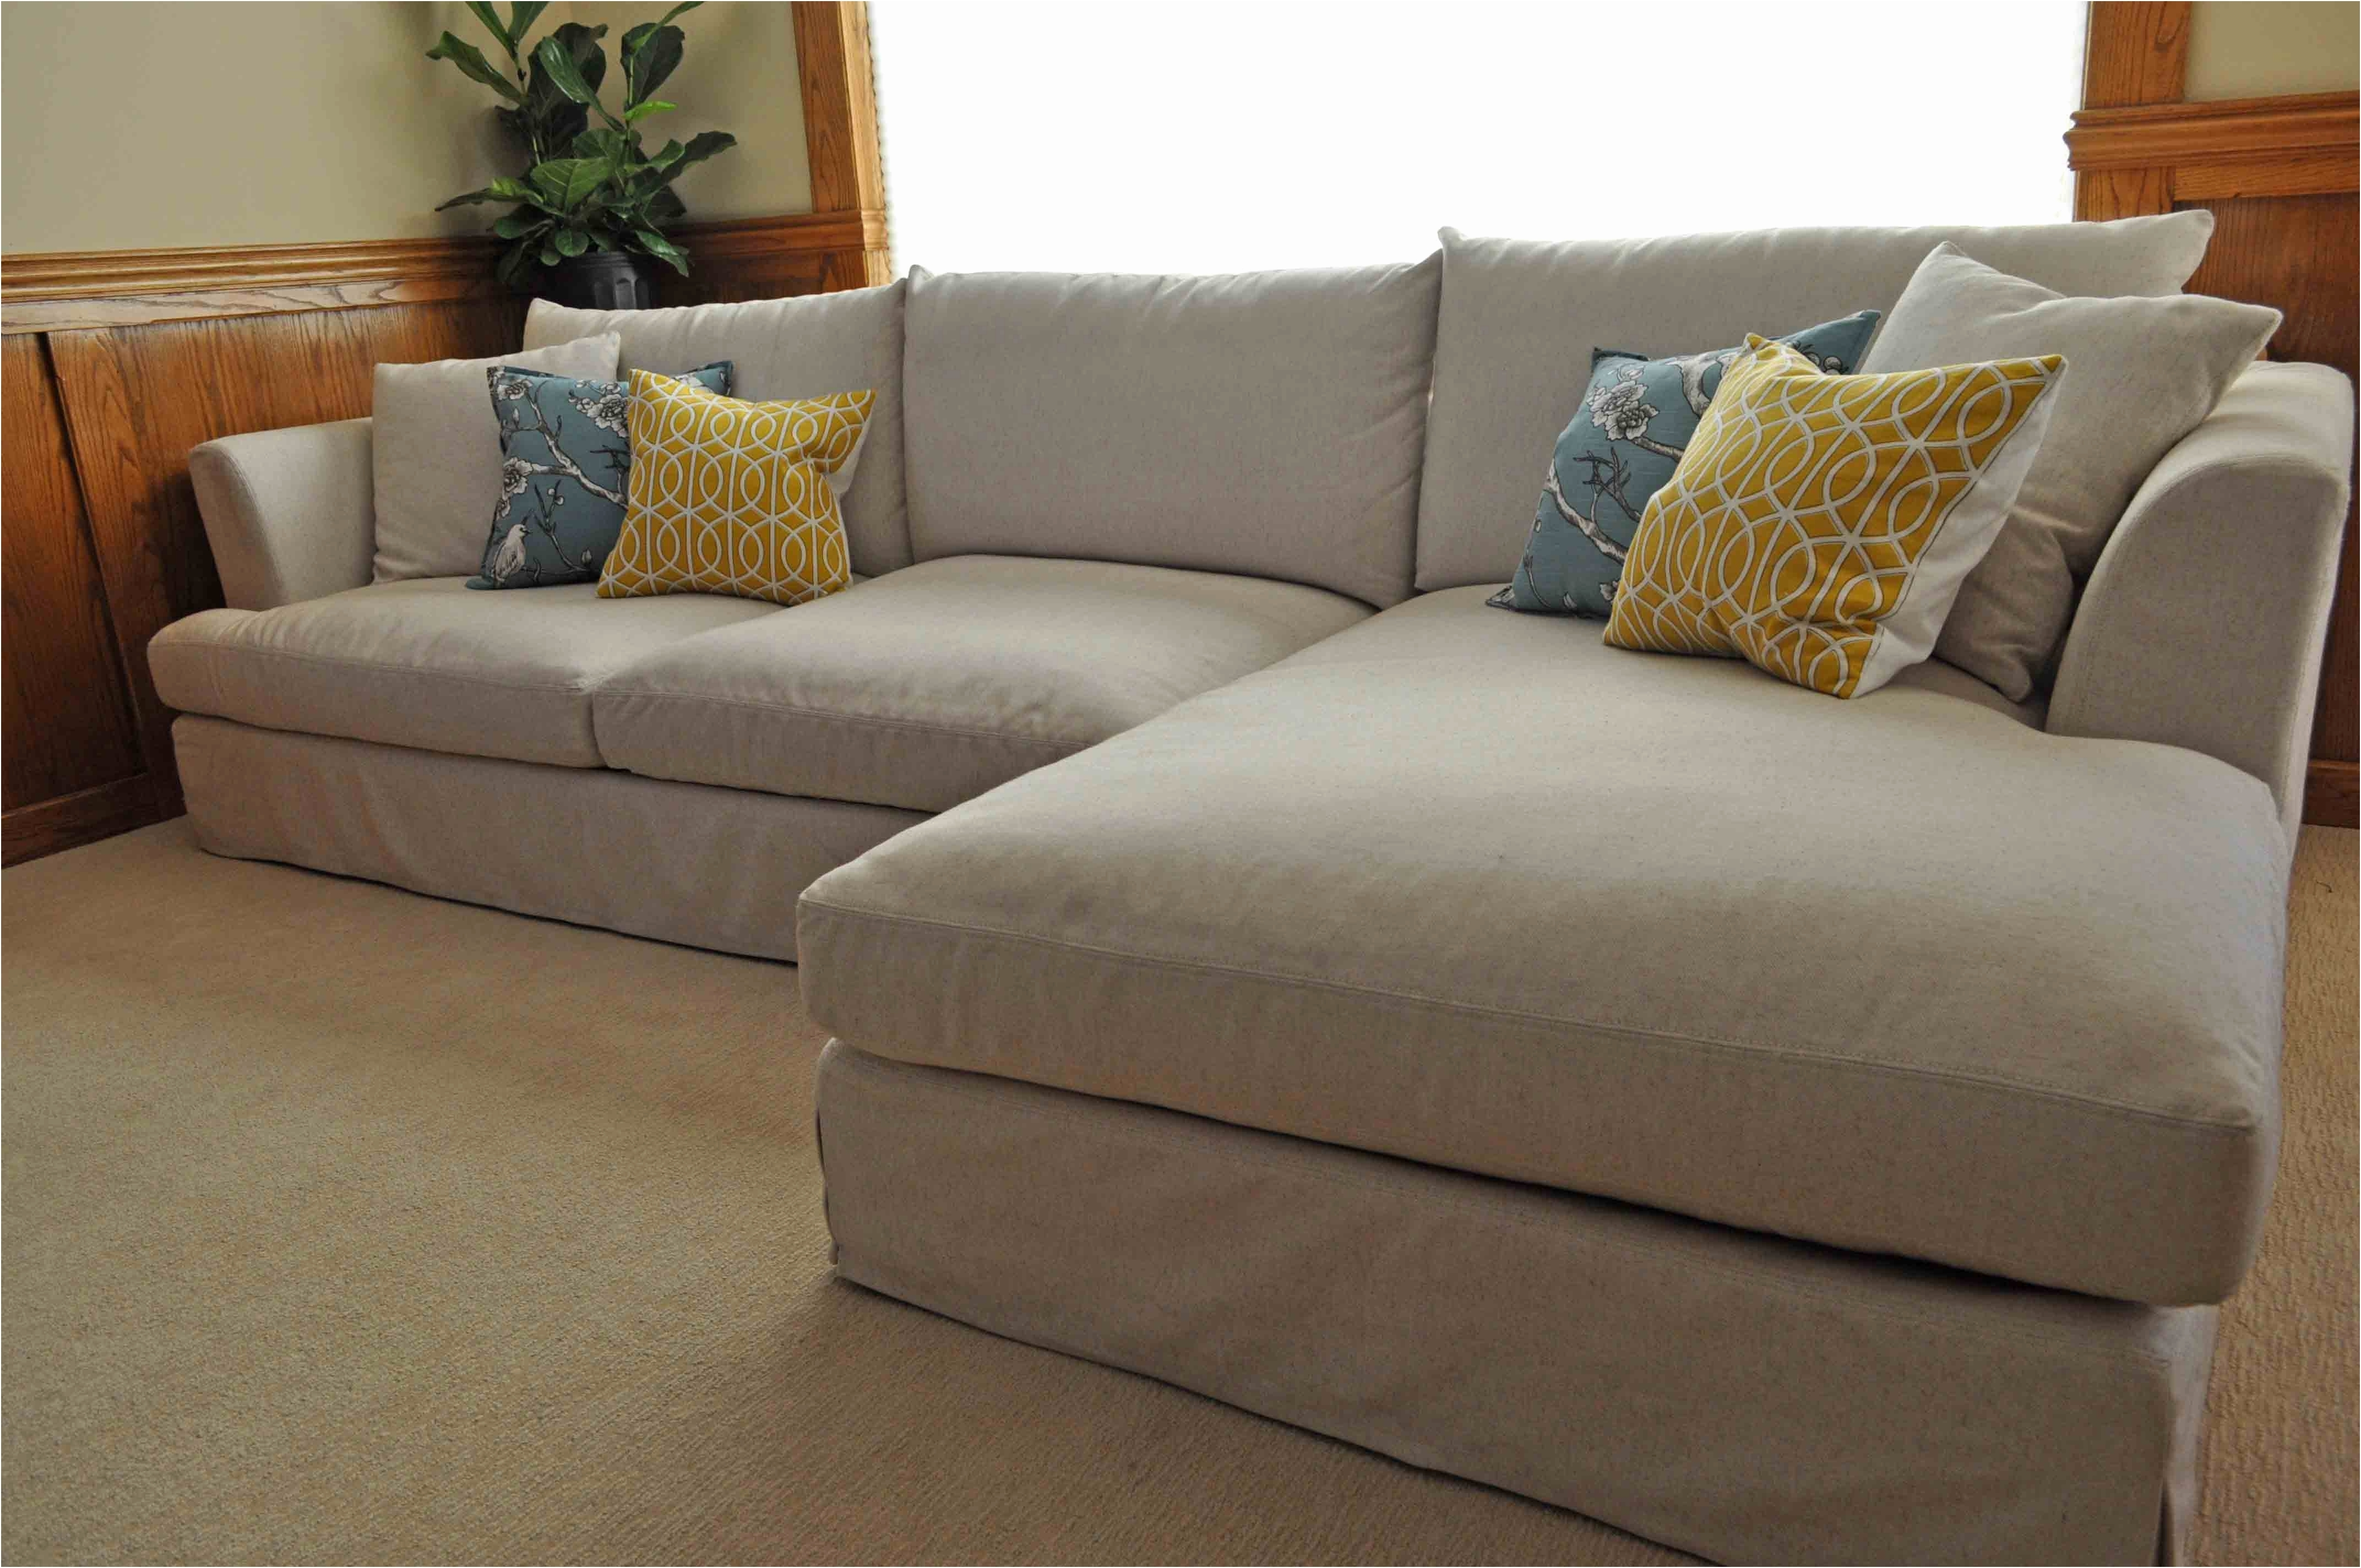 Widely Used Kingston Sectional Sofas Regarding Lovely Sofa Sectionals On Sale Fresh – Sofa Furnitures (View 19 of 20)